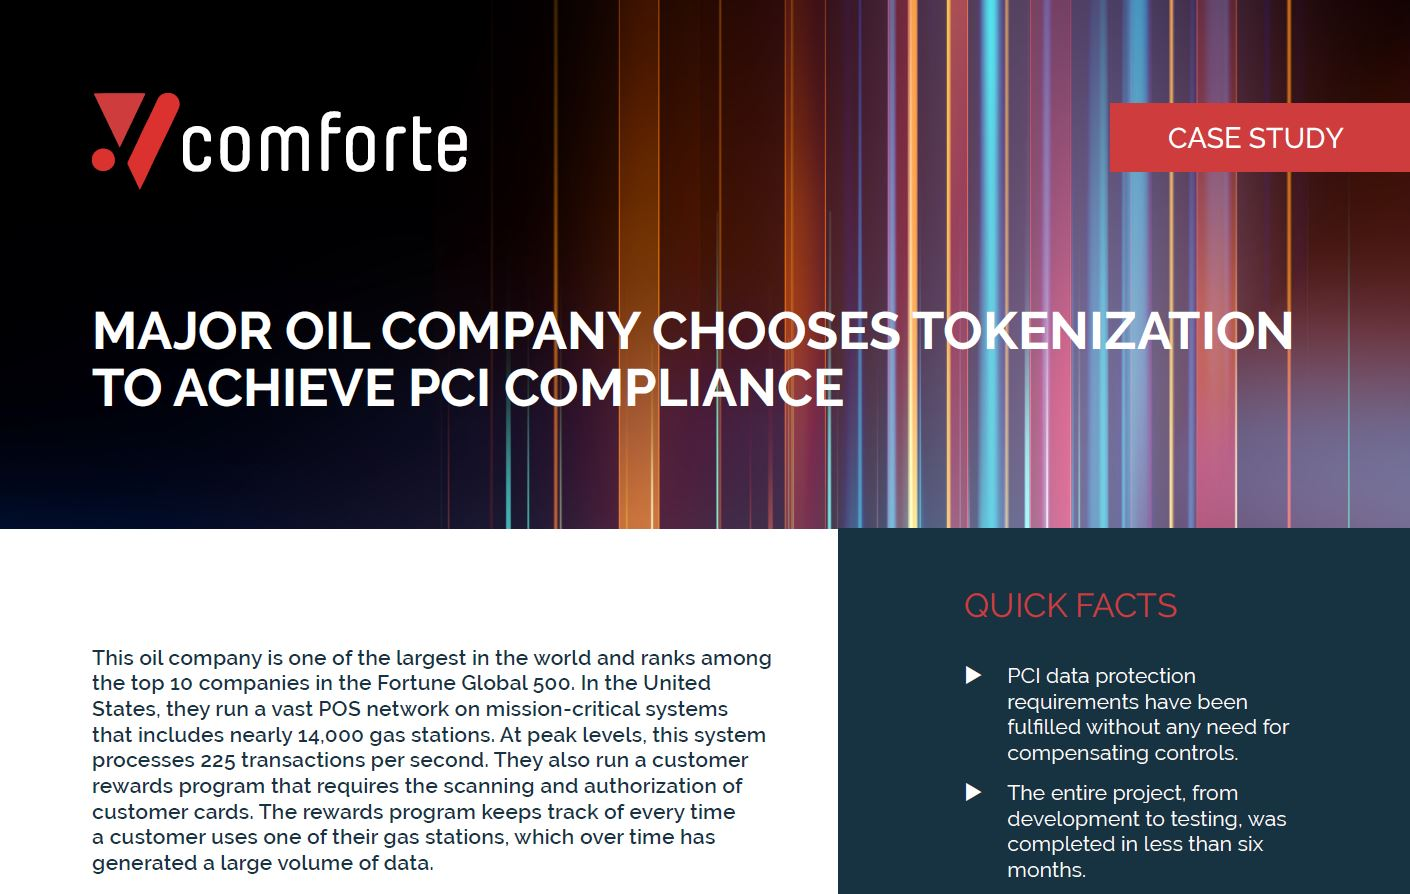 Major Oil Company Chooses Tokenization to Achieve PCI Compliance